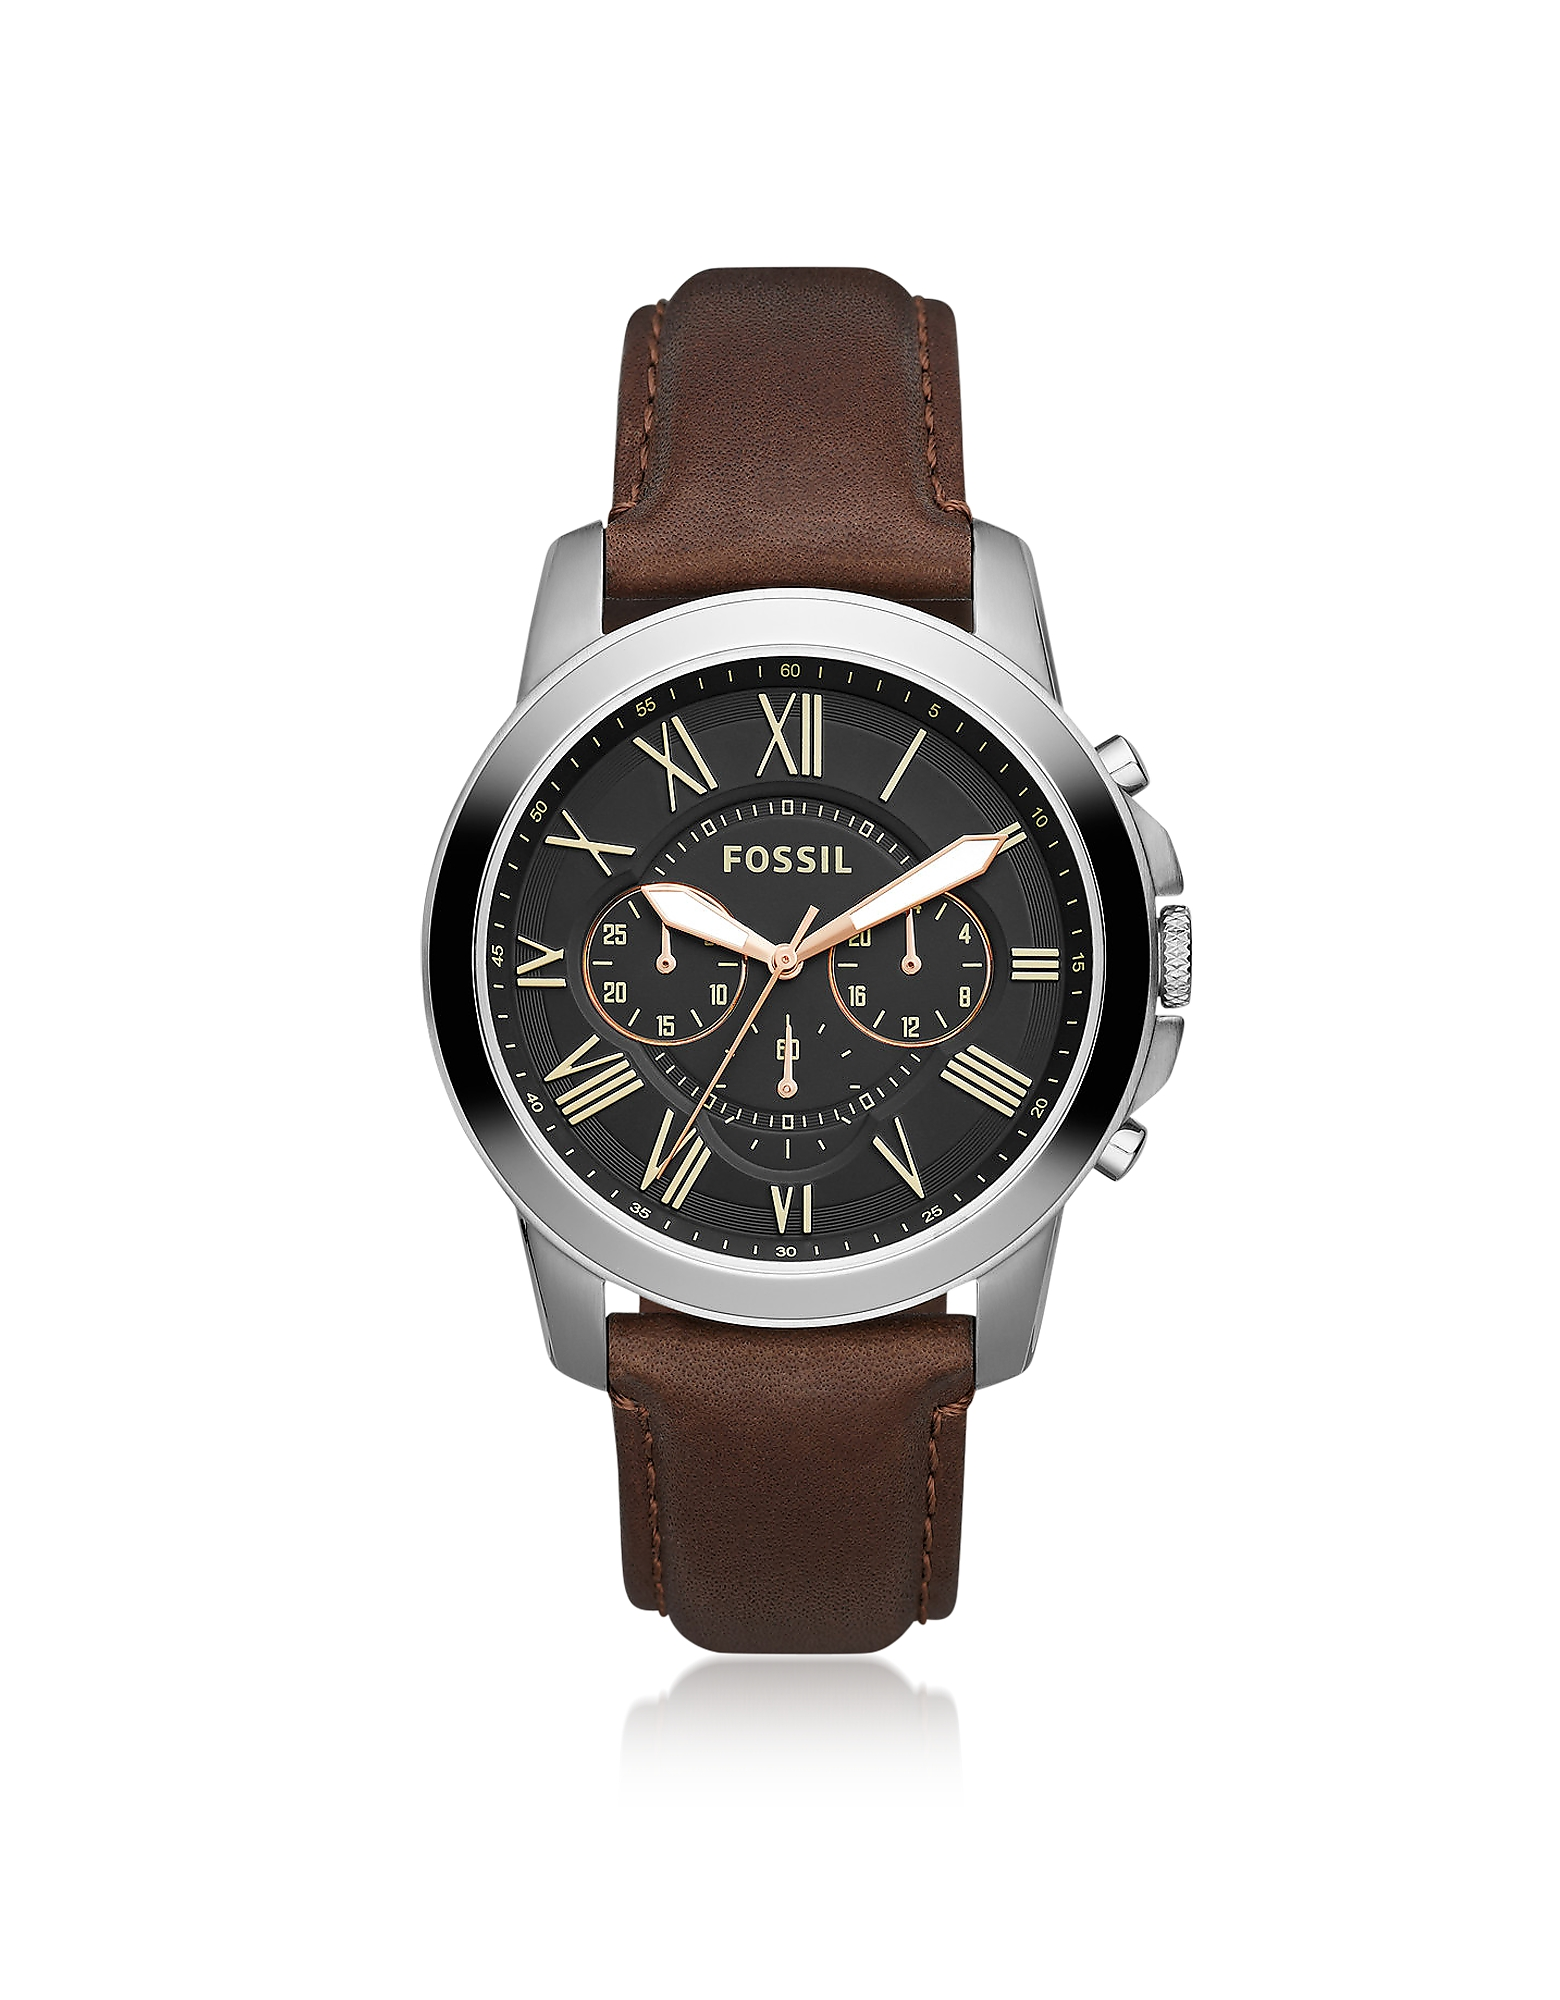 Fossil Men's Watches, Grant Chronograph Black/Brown Leather Watch